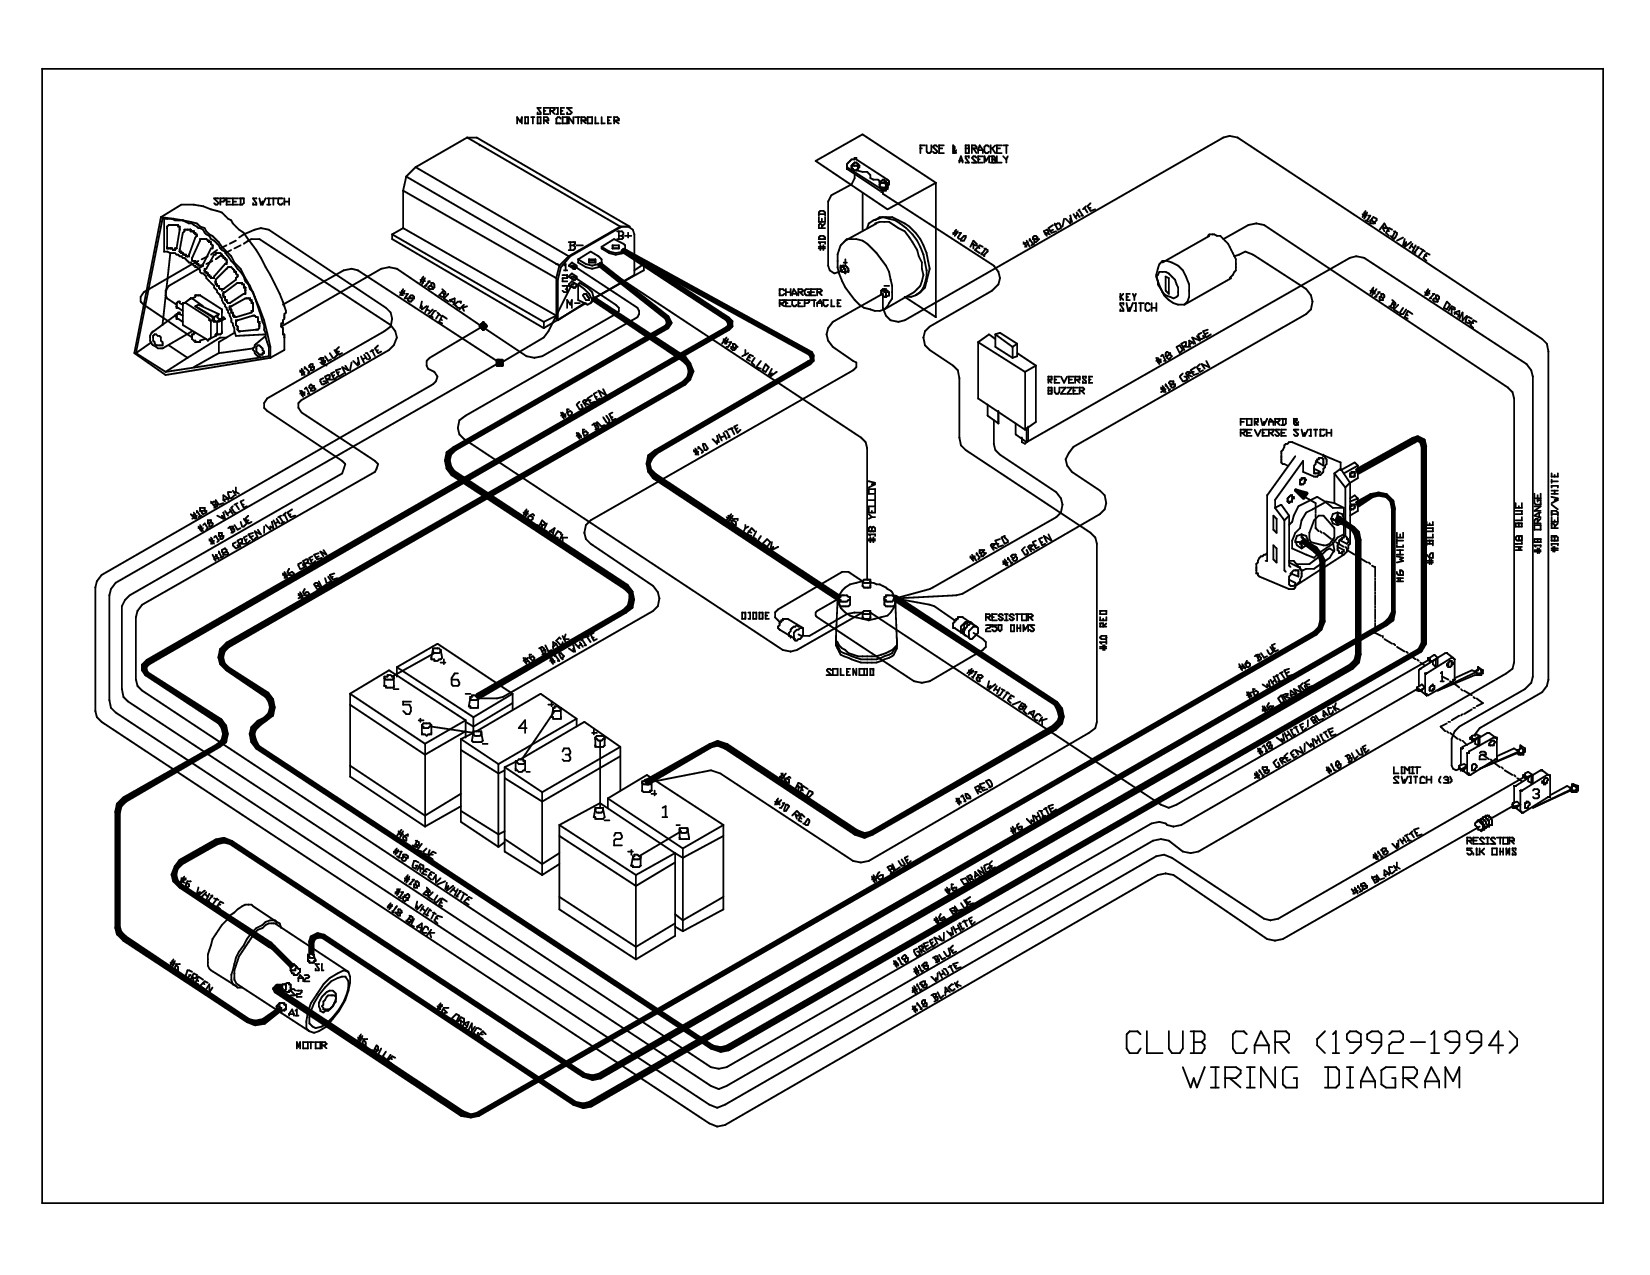 1994 Ezgo Gas Engine Wiring Diagram 1995 Club Car Wiring Diagram Of 1994 Ezgo Gas Engine Wiring Diagram 1998 Club Car Wiring Diagram 48 Volt Wiring Diagram Data